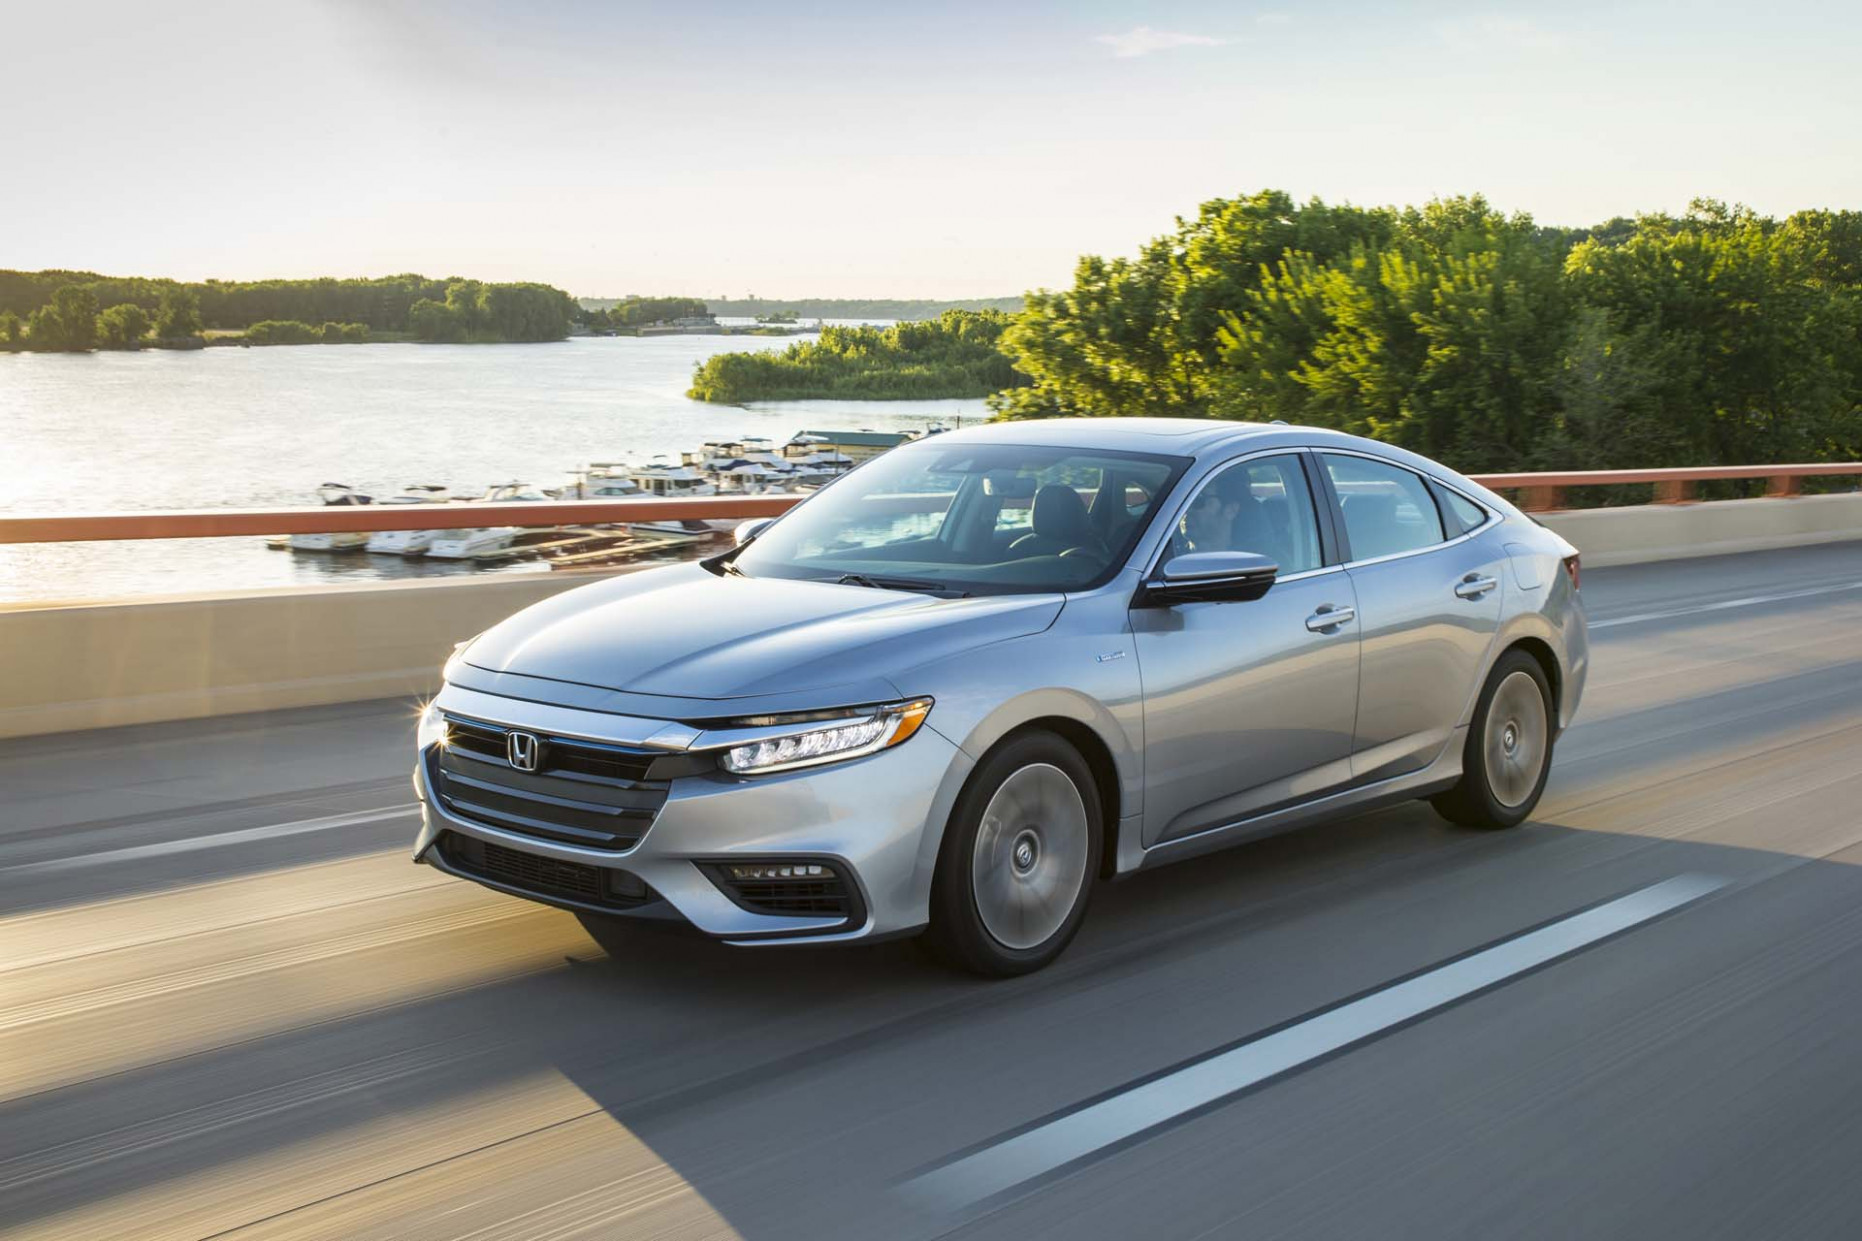 6 Honda Insight Review, Ratings, Specs, Prices, and Photos ..